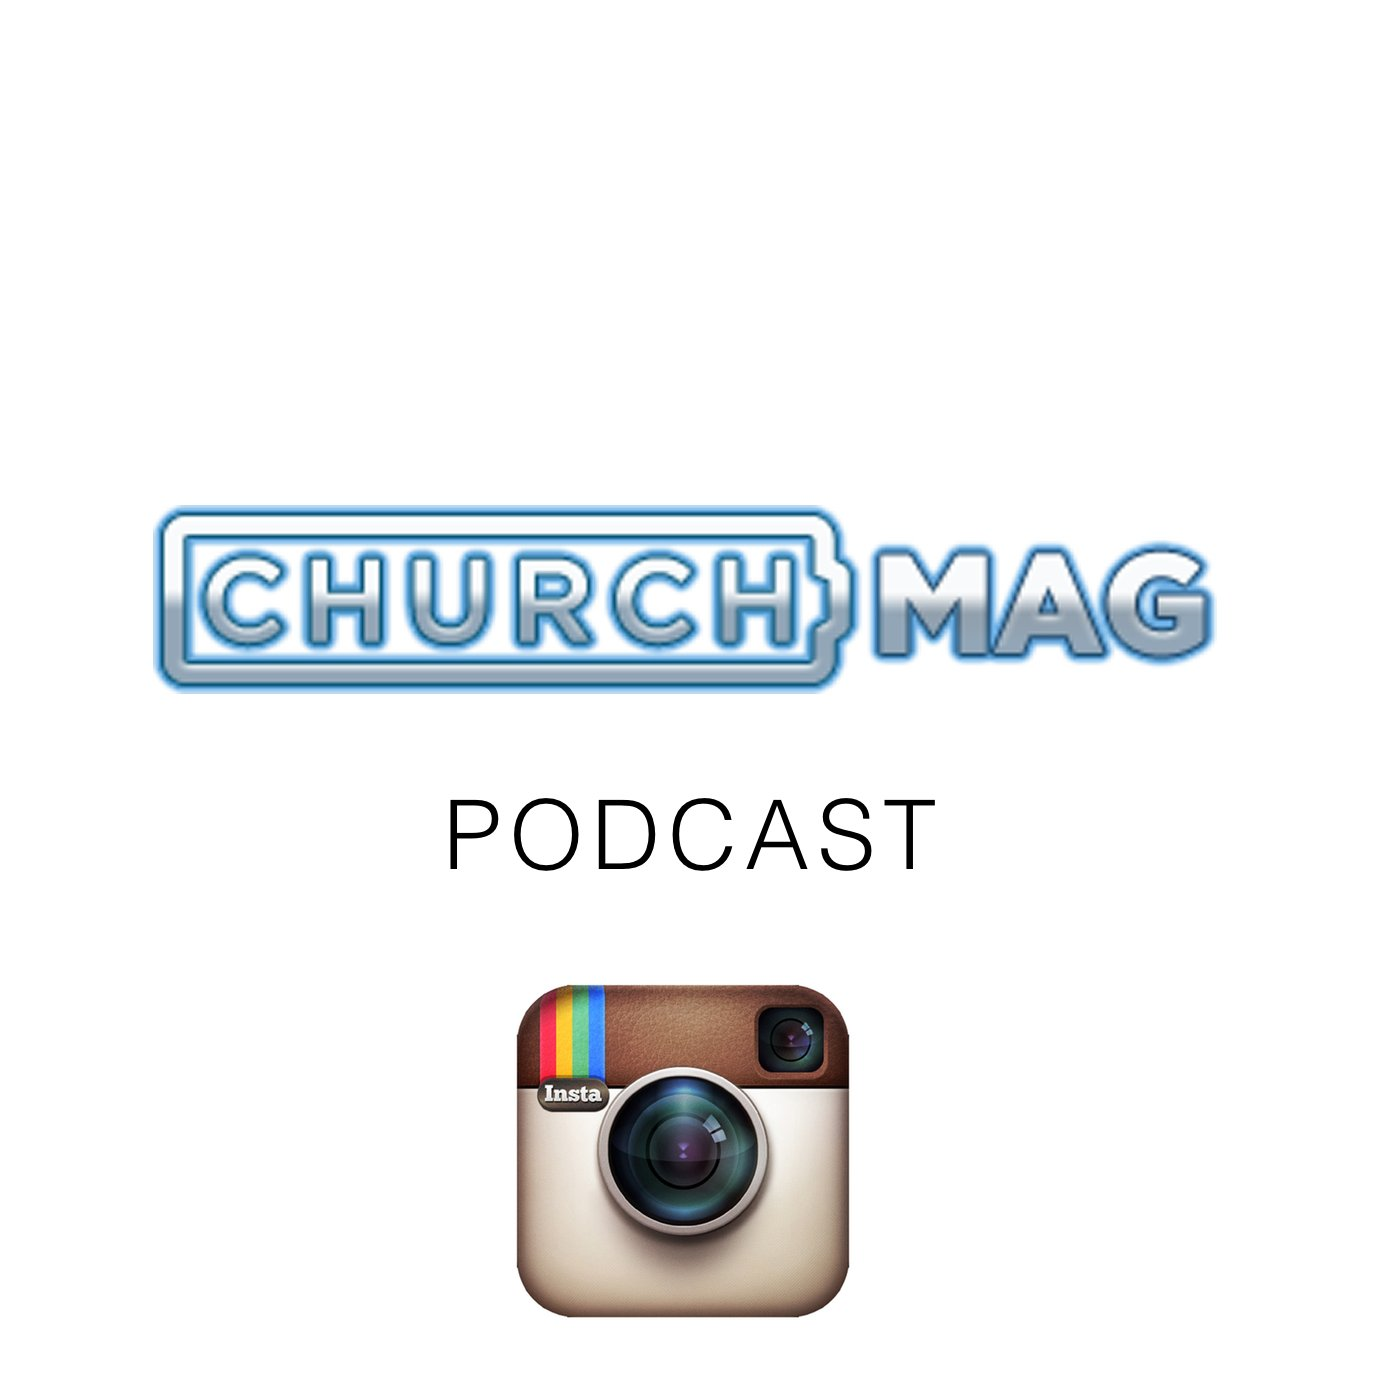 What About Using Instagram During Worship Service? [Podcast]